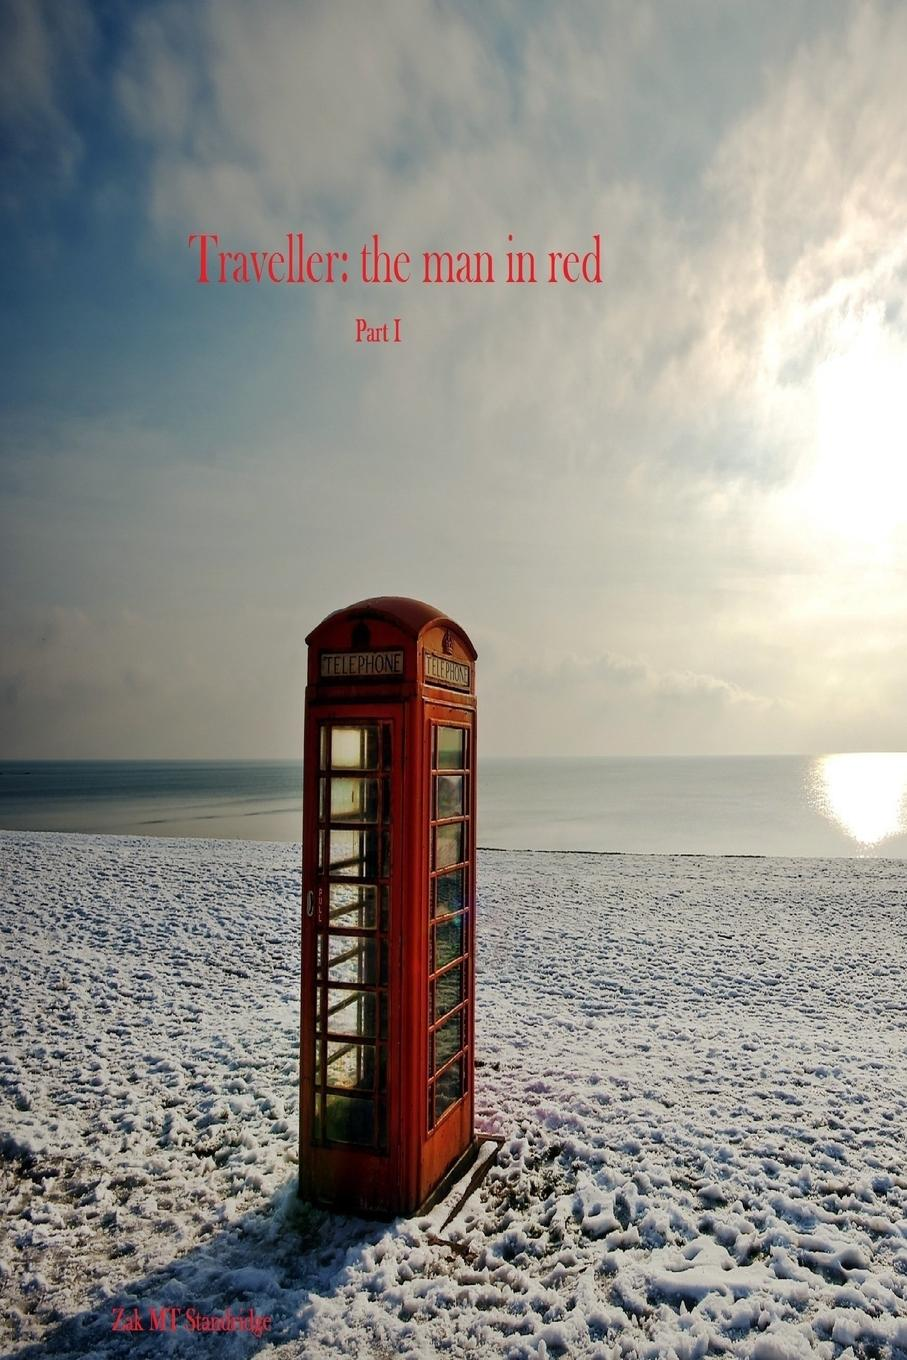 Zak MT Standridge Traveller. the man in red joel davis the lord wants to see your face